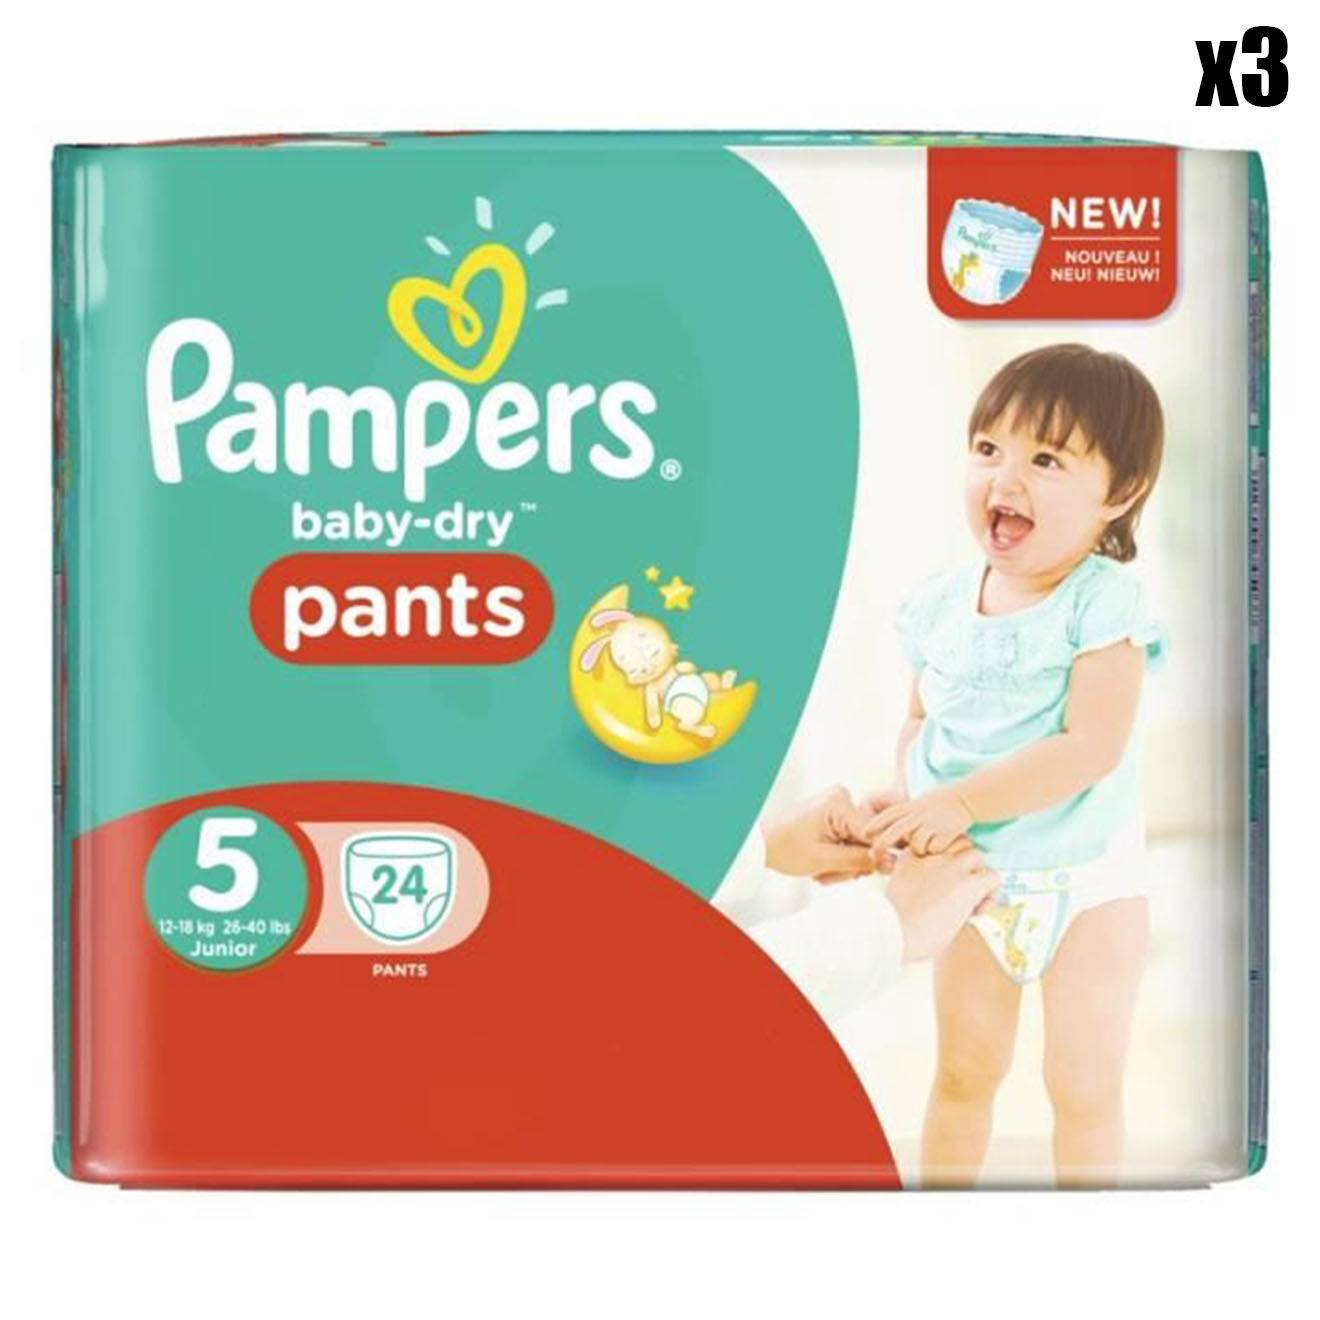 Pampers 3 Packs de 24 couches - 72 couches Baby Dry Pants T5 / 11-23 kg